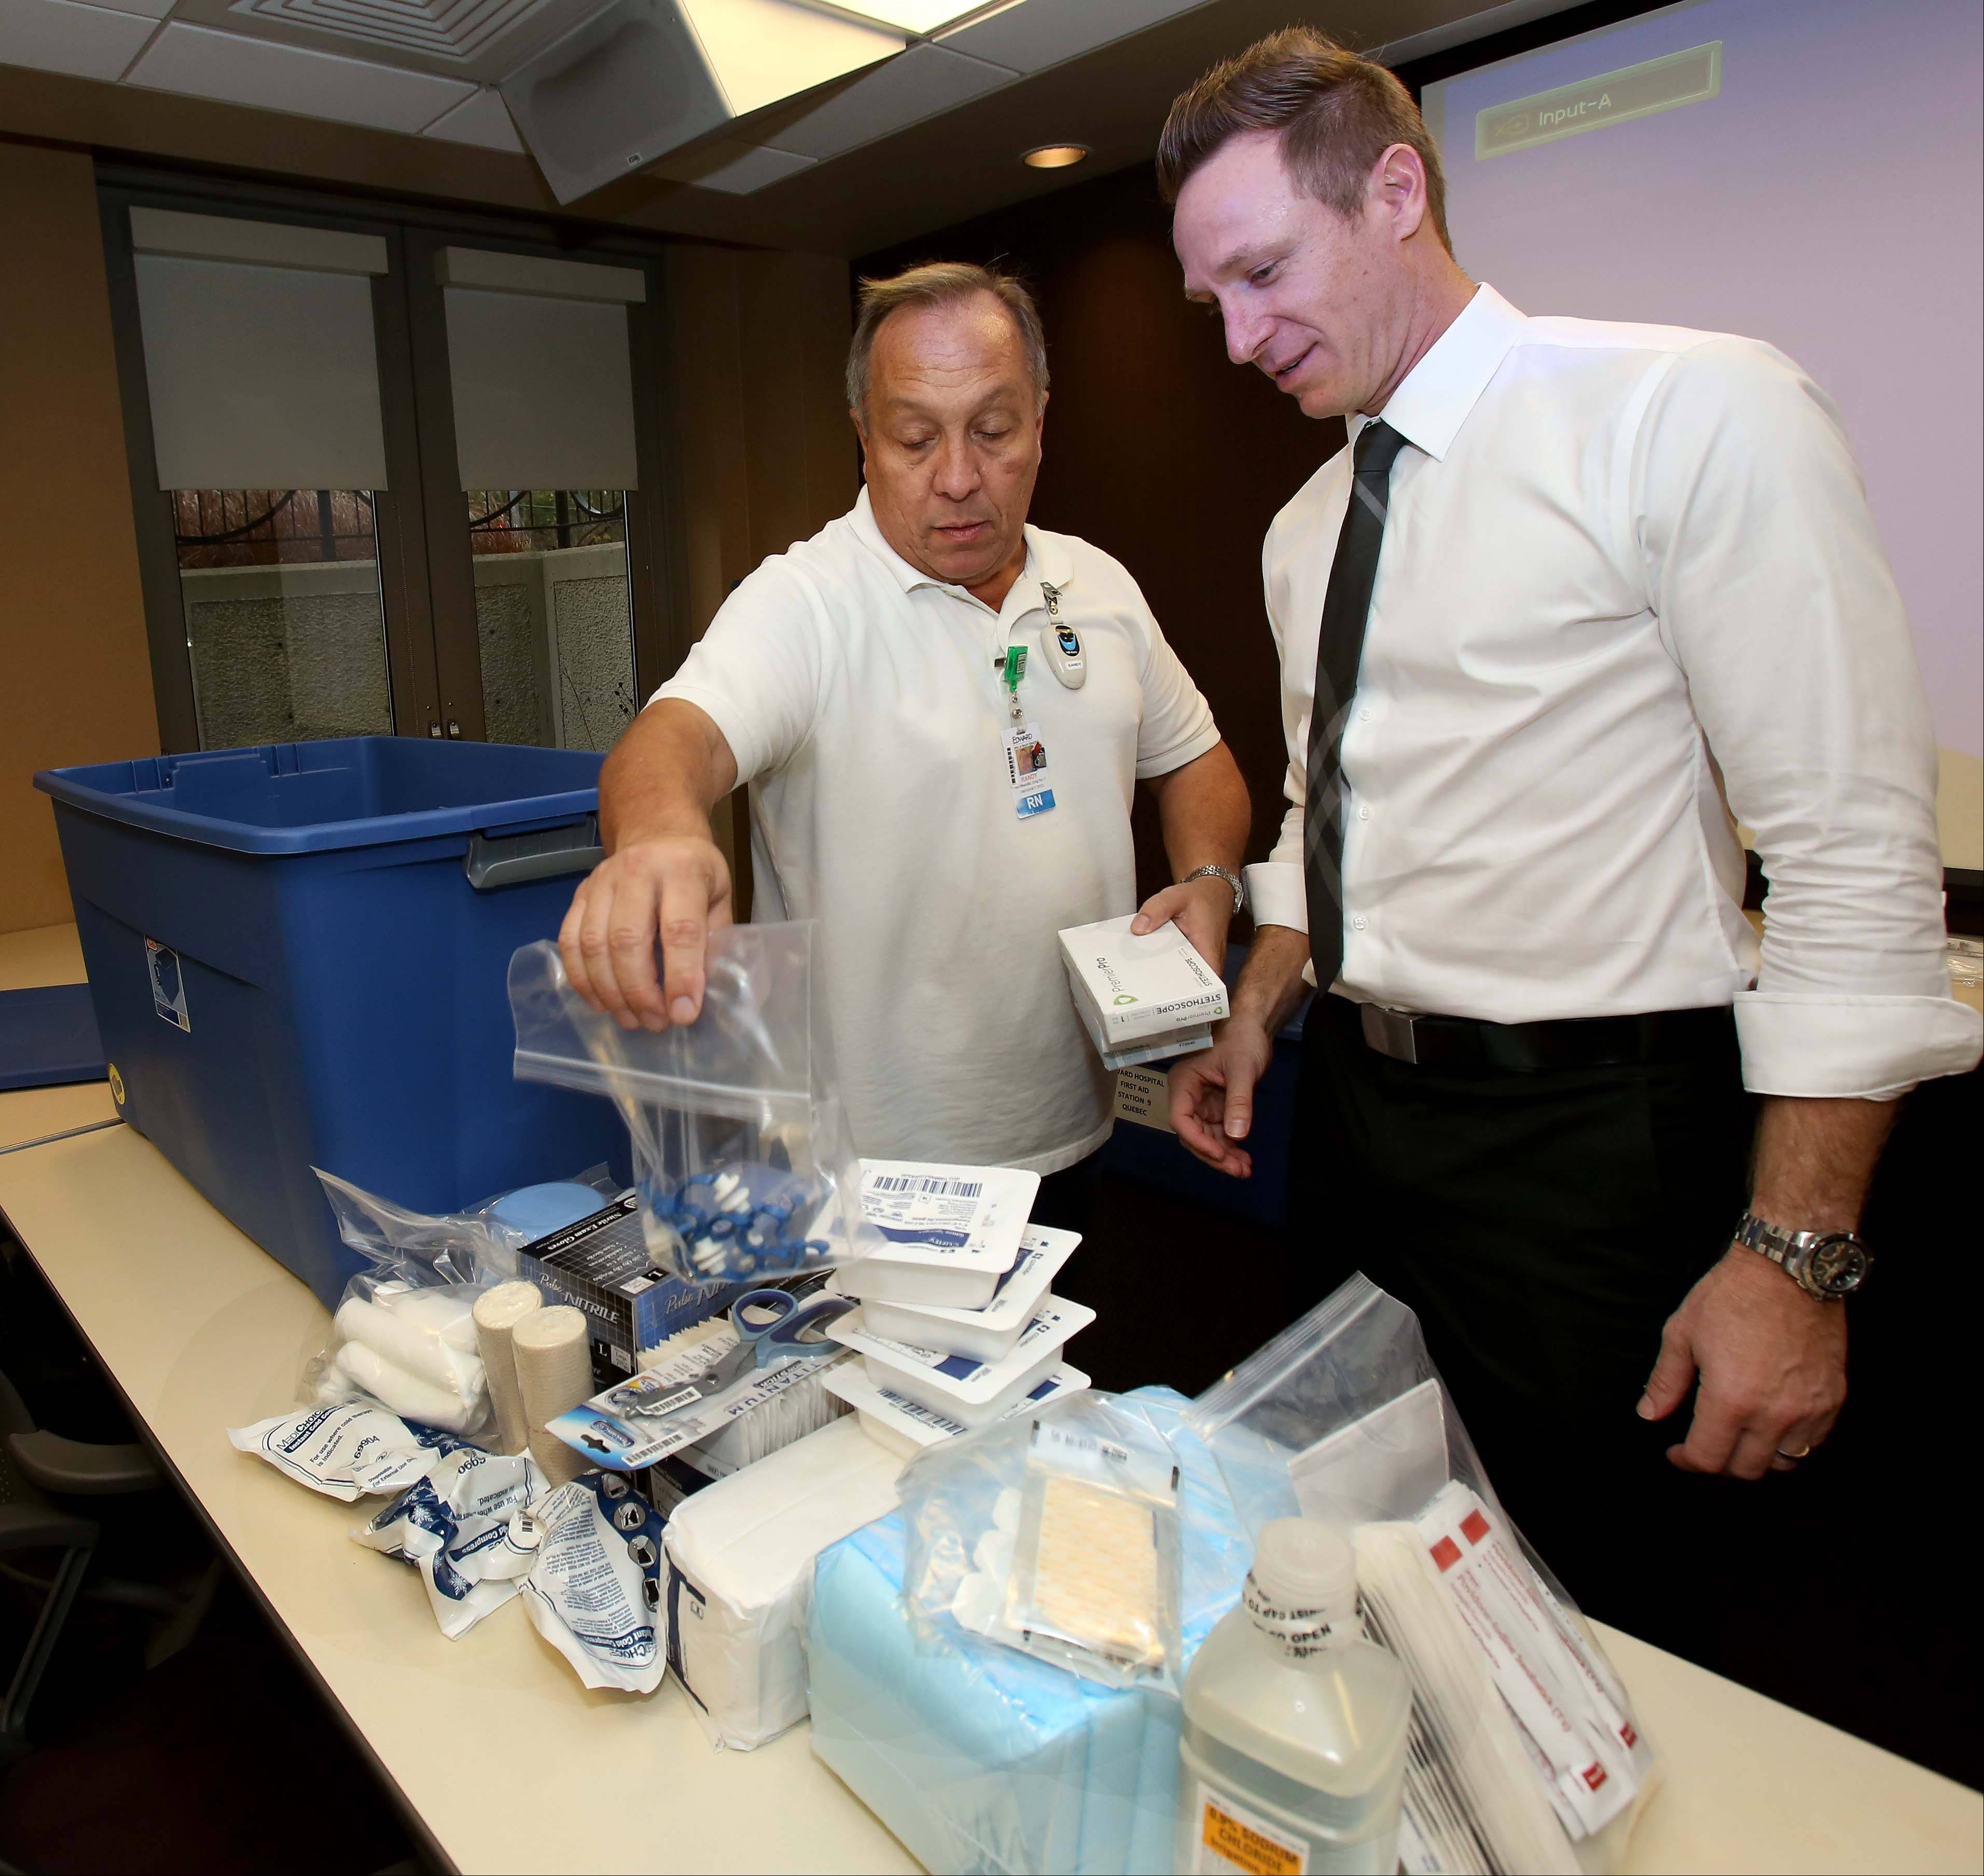 Edward Hospital Emergency Room nurse Randy Schmidt and Dr. Michael Hartmann look over some of the supplies each aid station will receive Sunday for the inaugural Edward Hospital Naperville Marathon and Half Marathon.